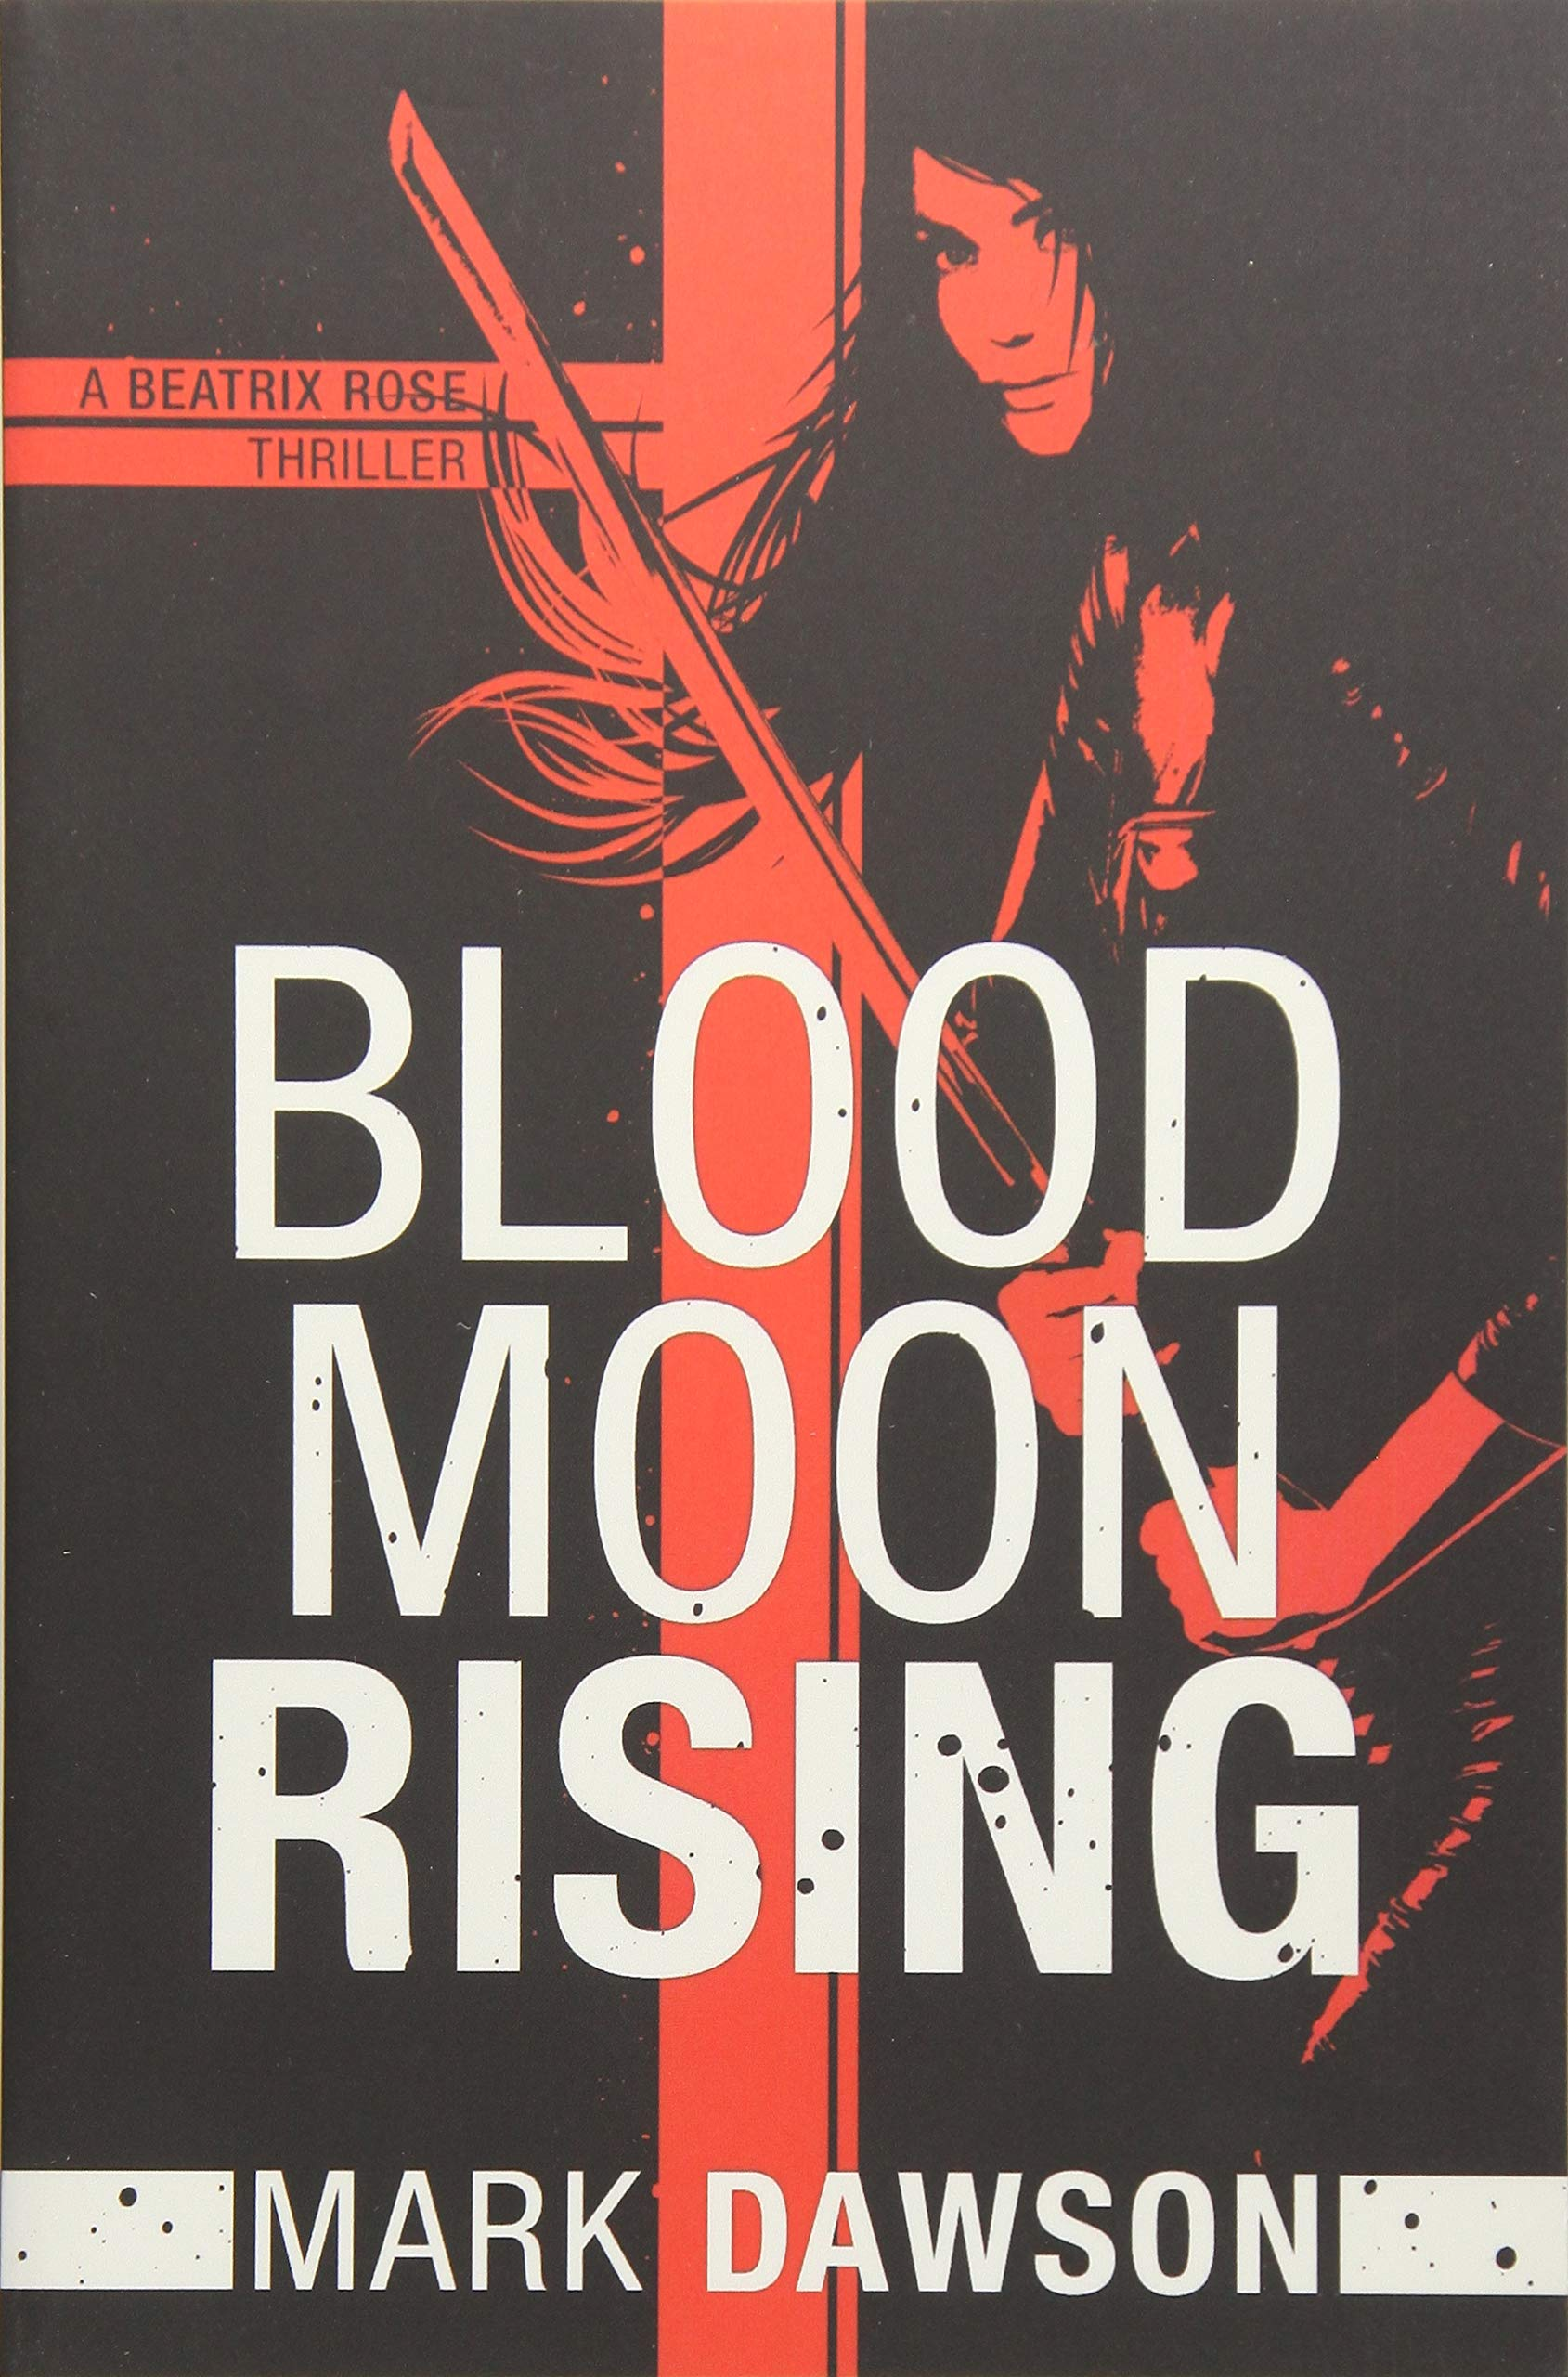 Blood Moon Rising - EN to FR